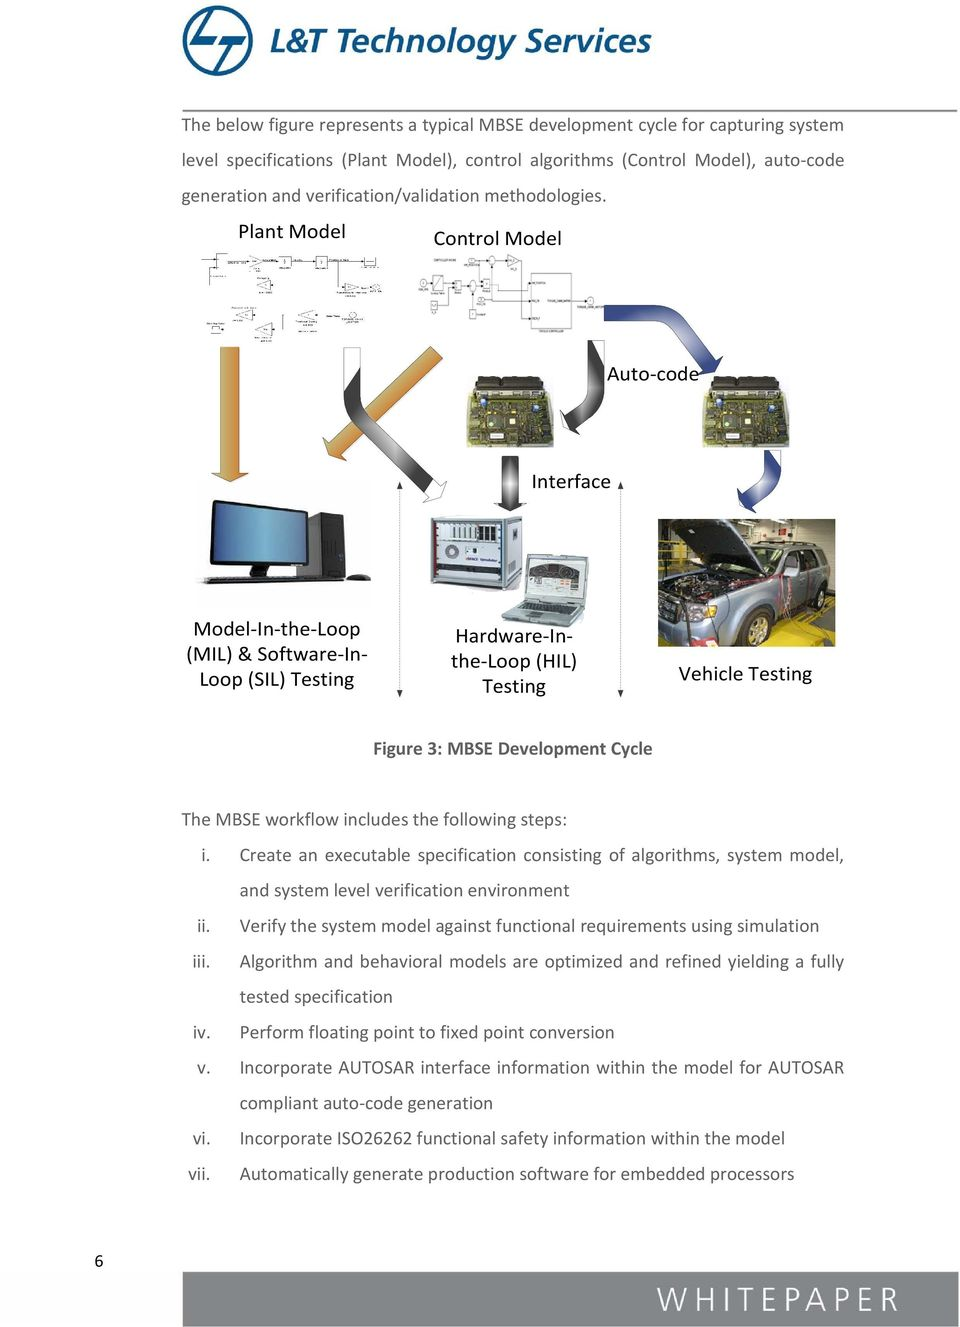 Plant Model Control Model Auto-code Interface Model-In-the-Loop (MIL) & Software-In- Loop (SIL) Testing Hardware-Inthe-Loop (HIL) Testing Vehicle Testing Figure 3: MBSE Development Cycle The MBSE